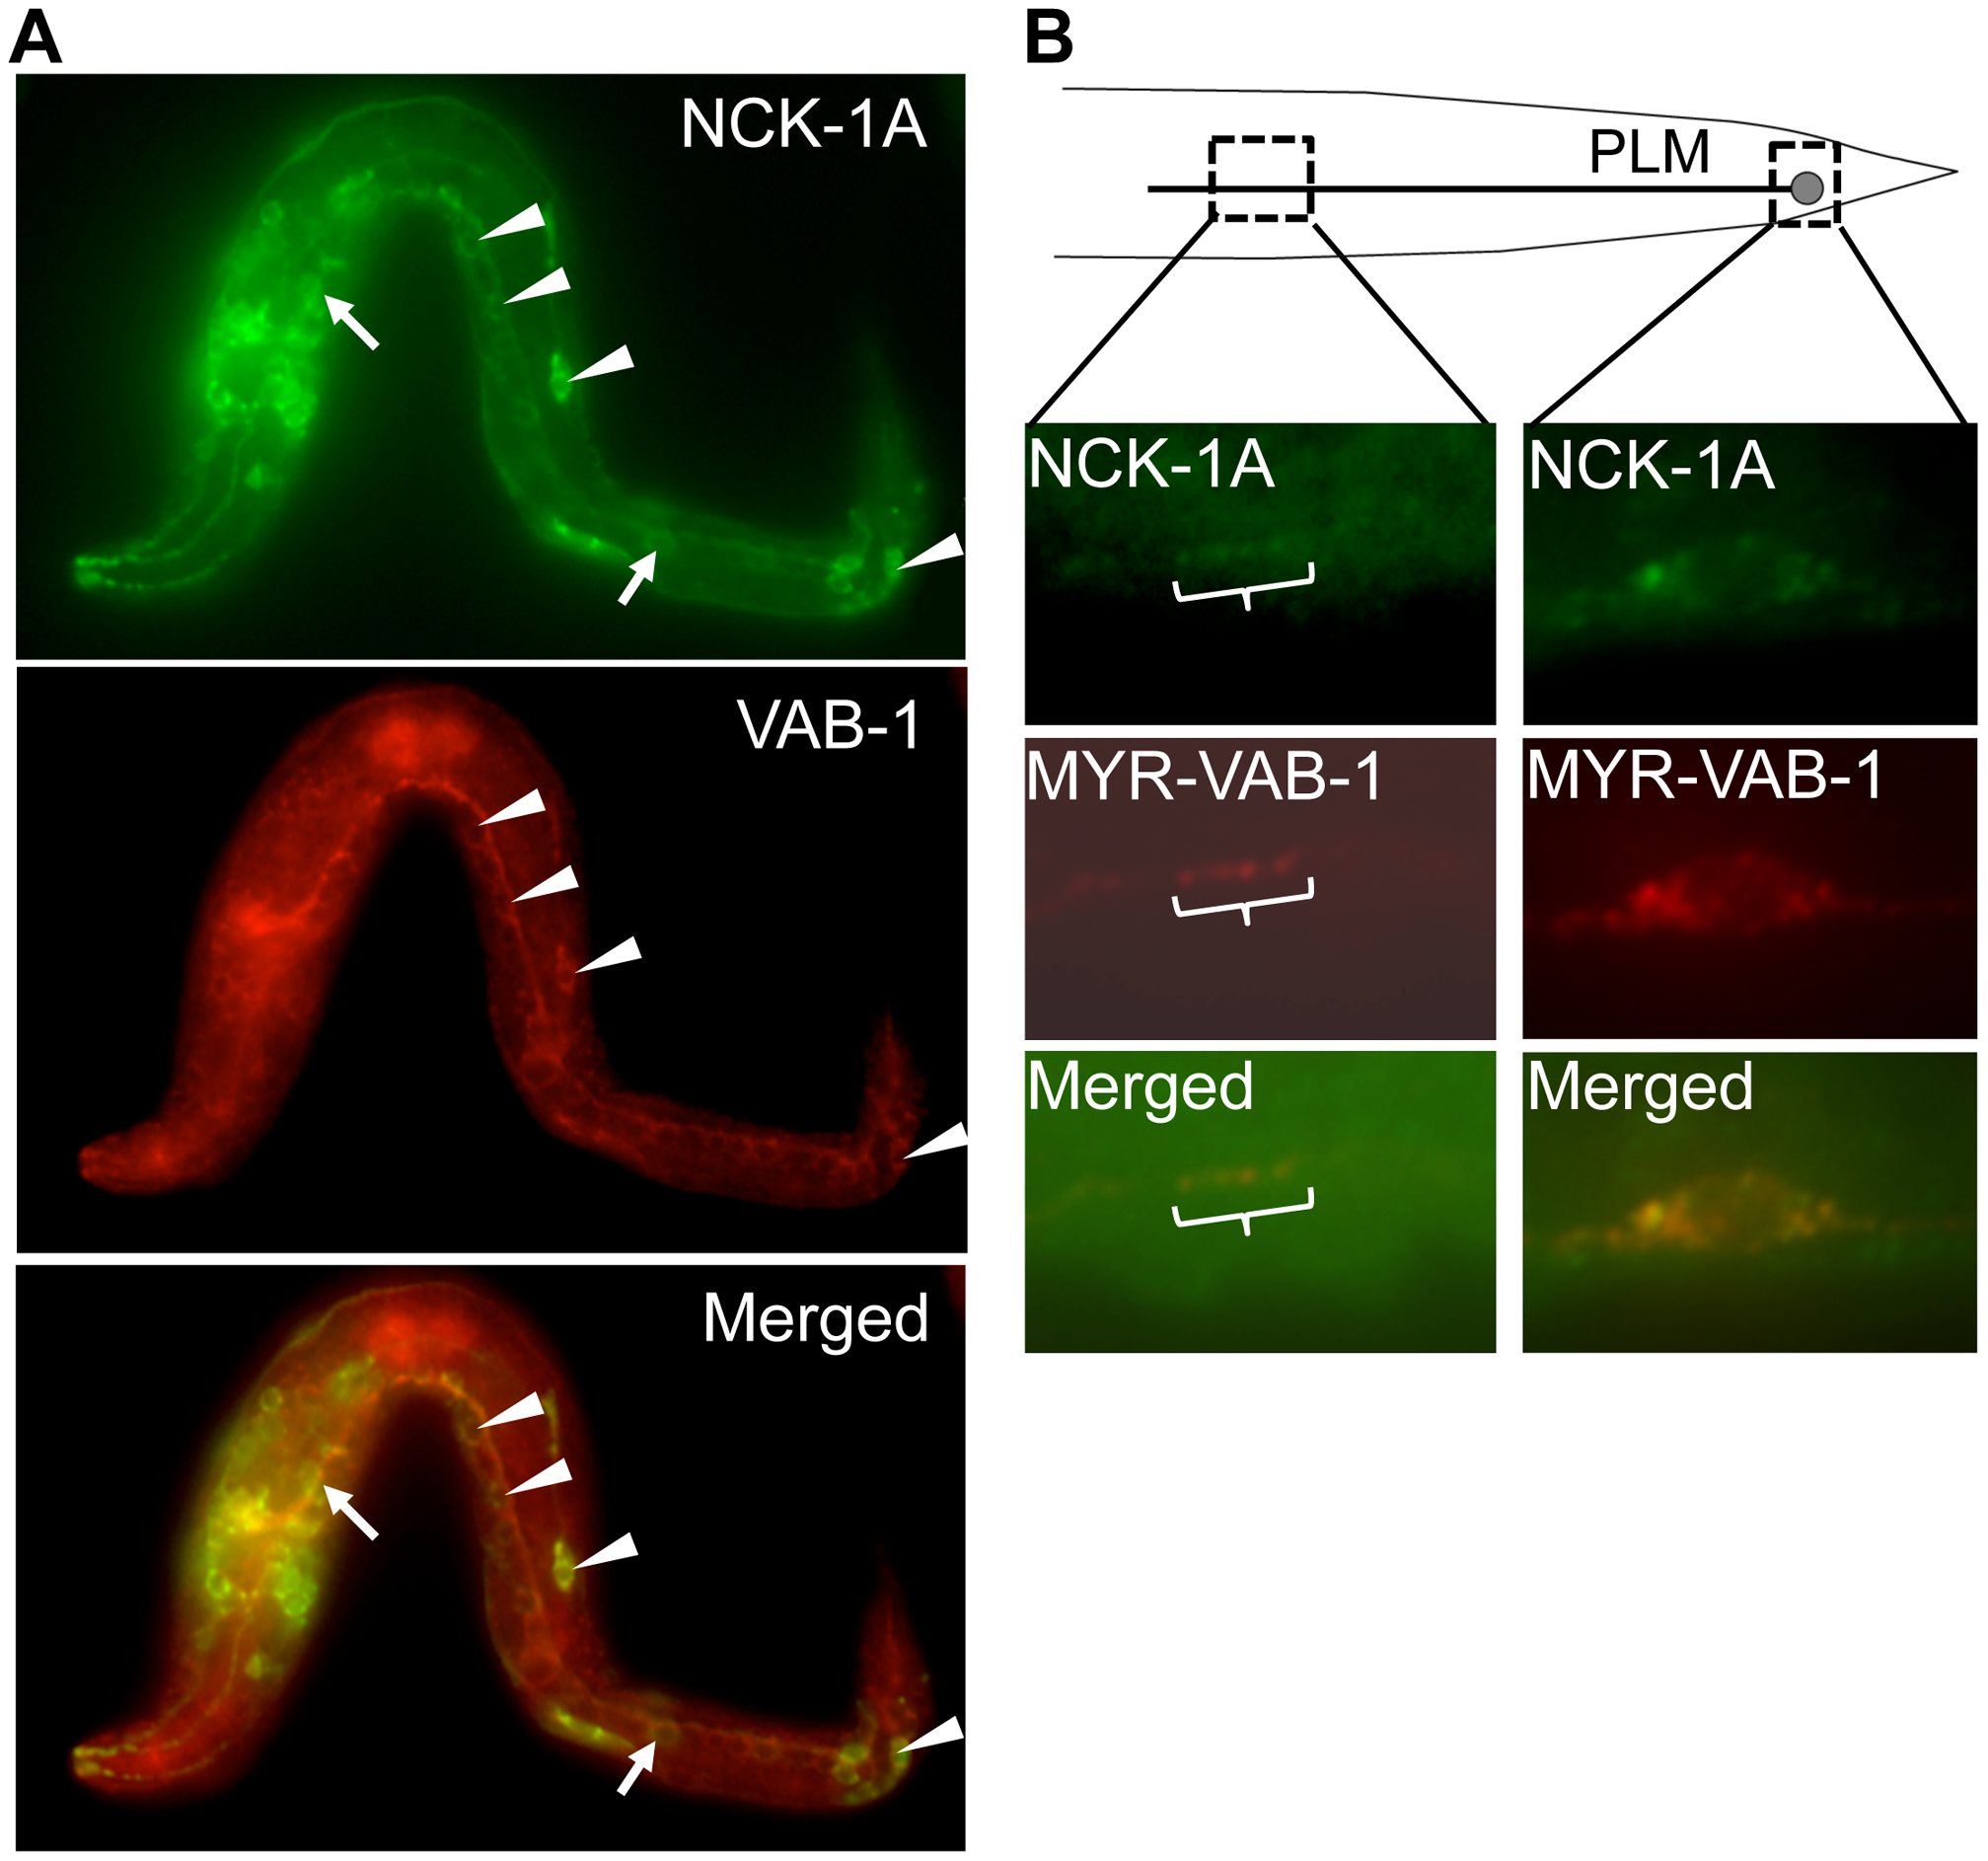 NCK-1 co-localizes with VAB-1.